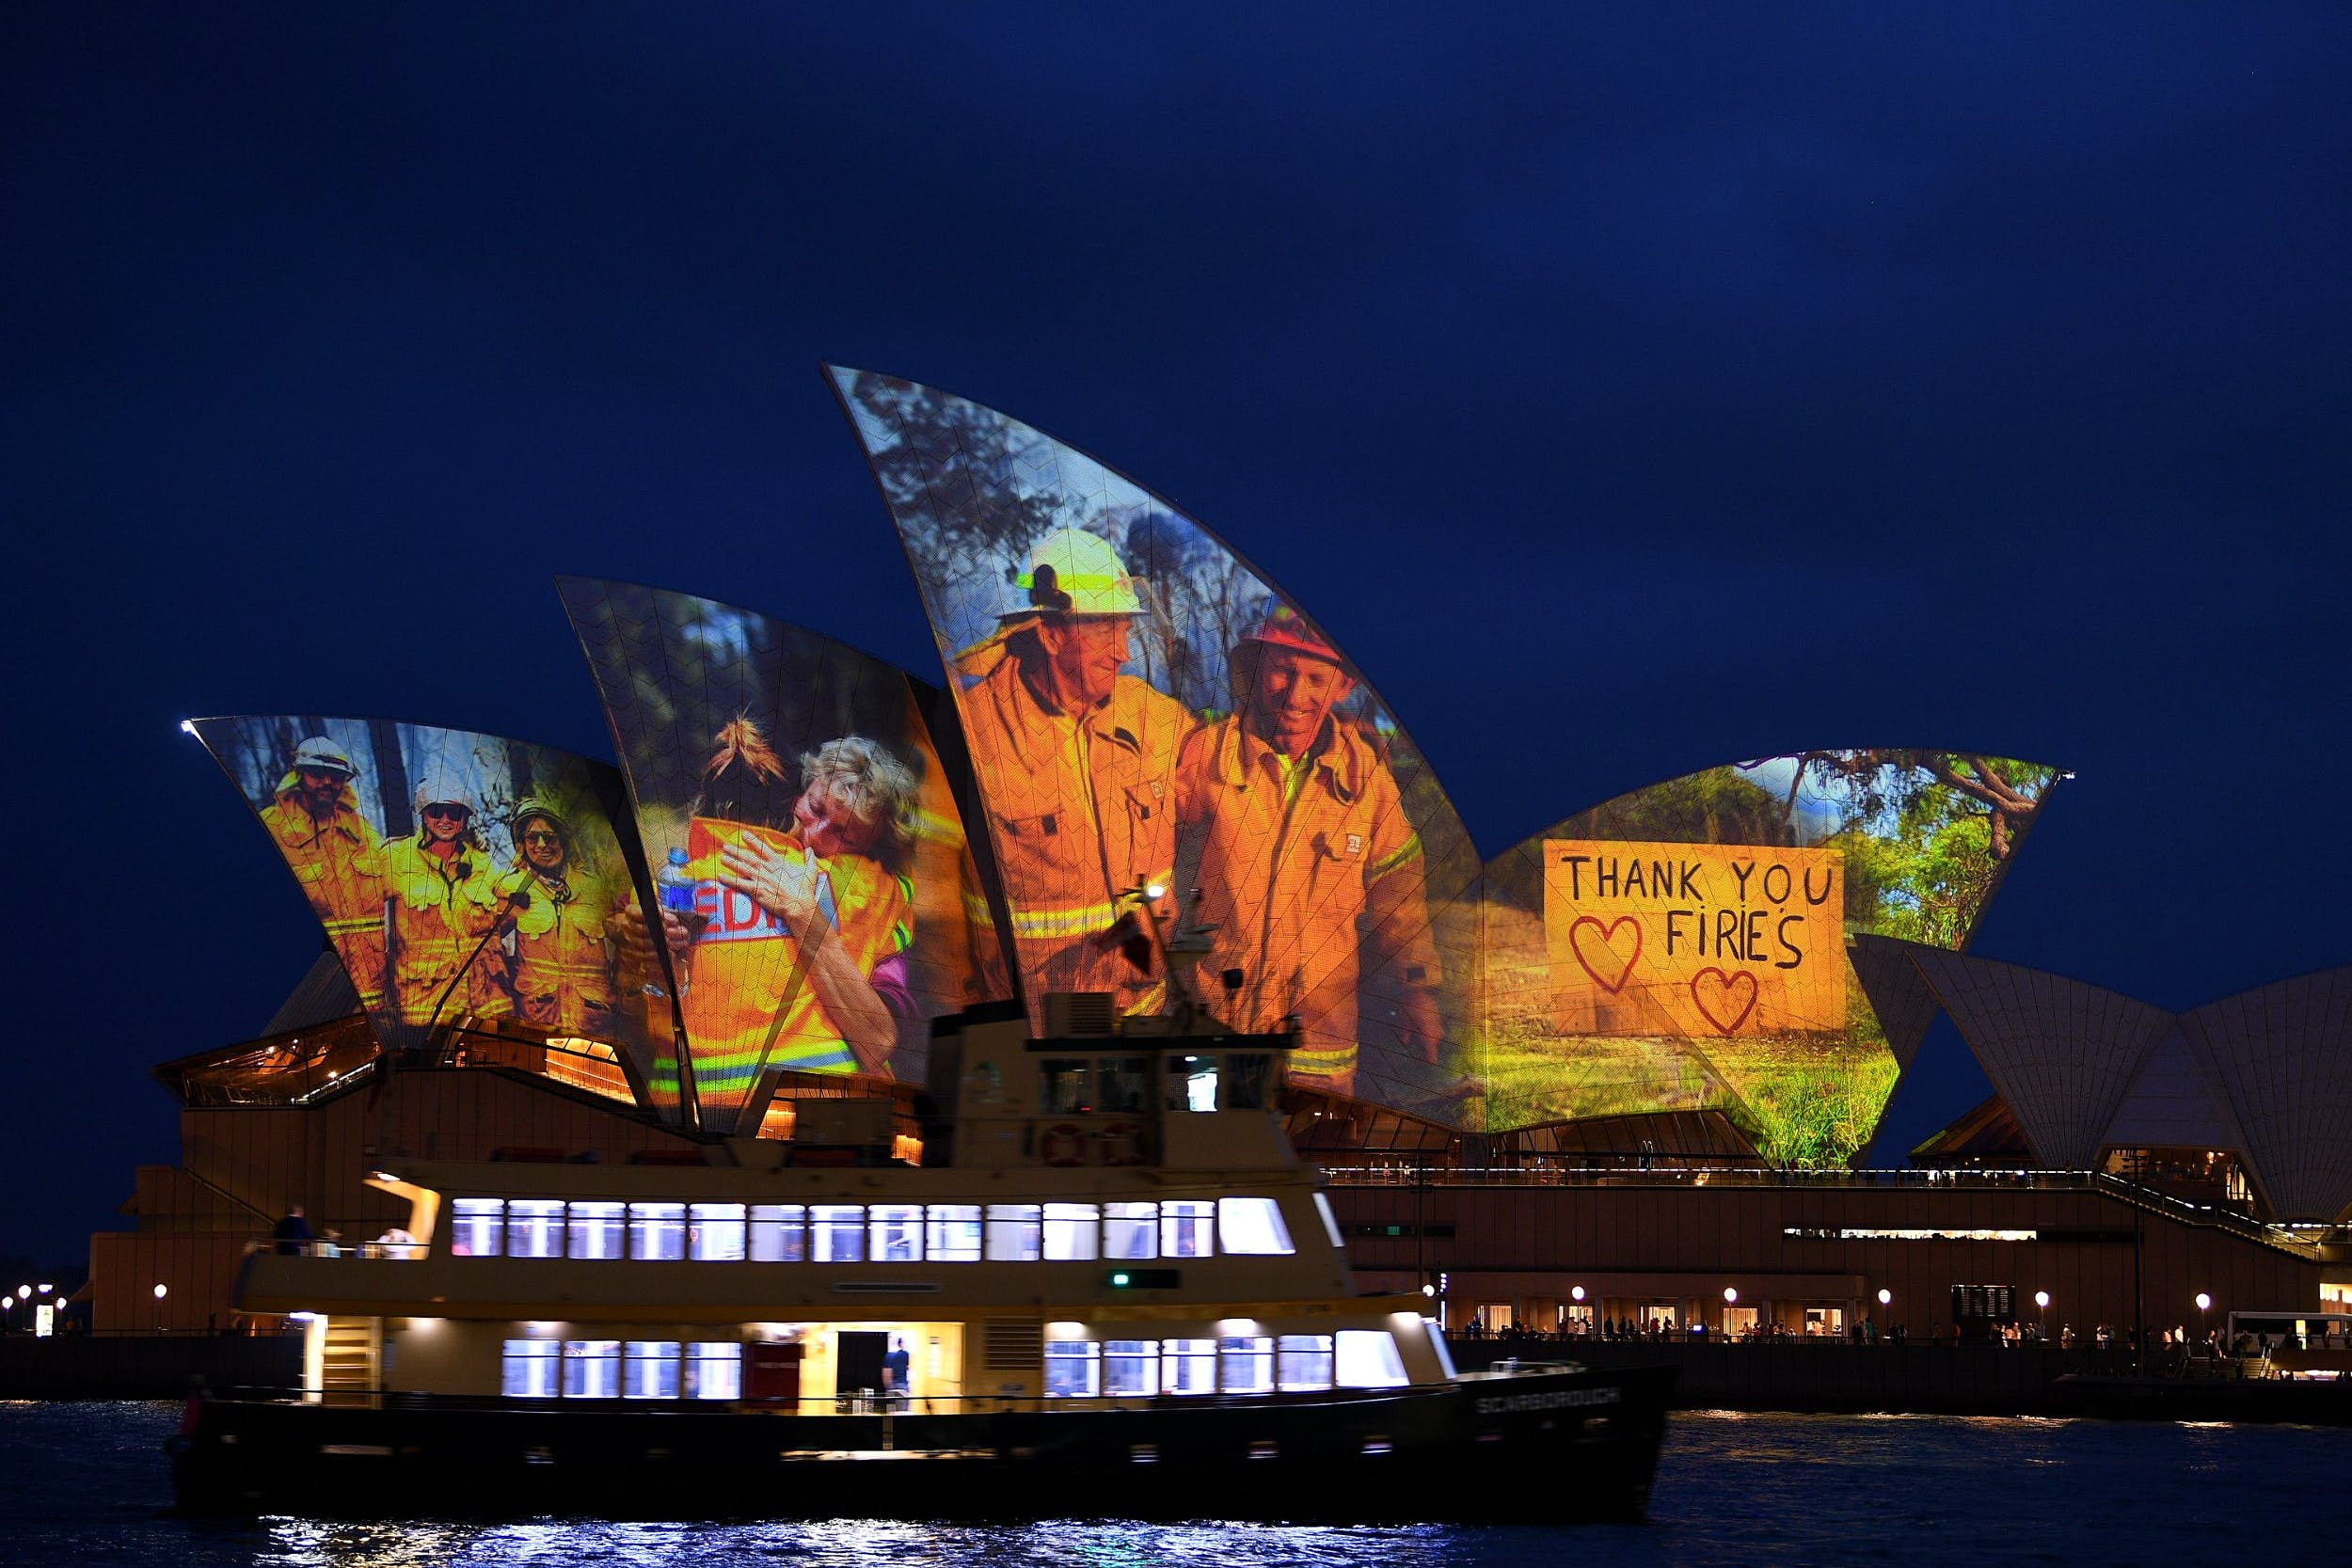 A cruise ship in front of the Sydney Opera House, which is lit up with a tribute to firefighters